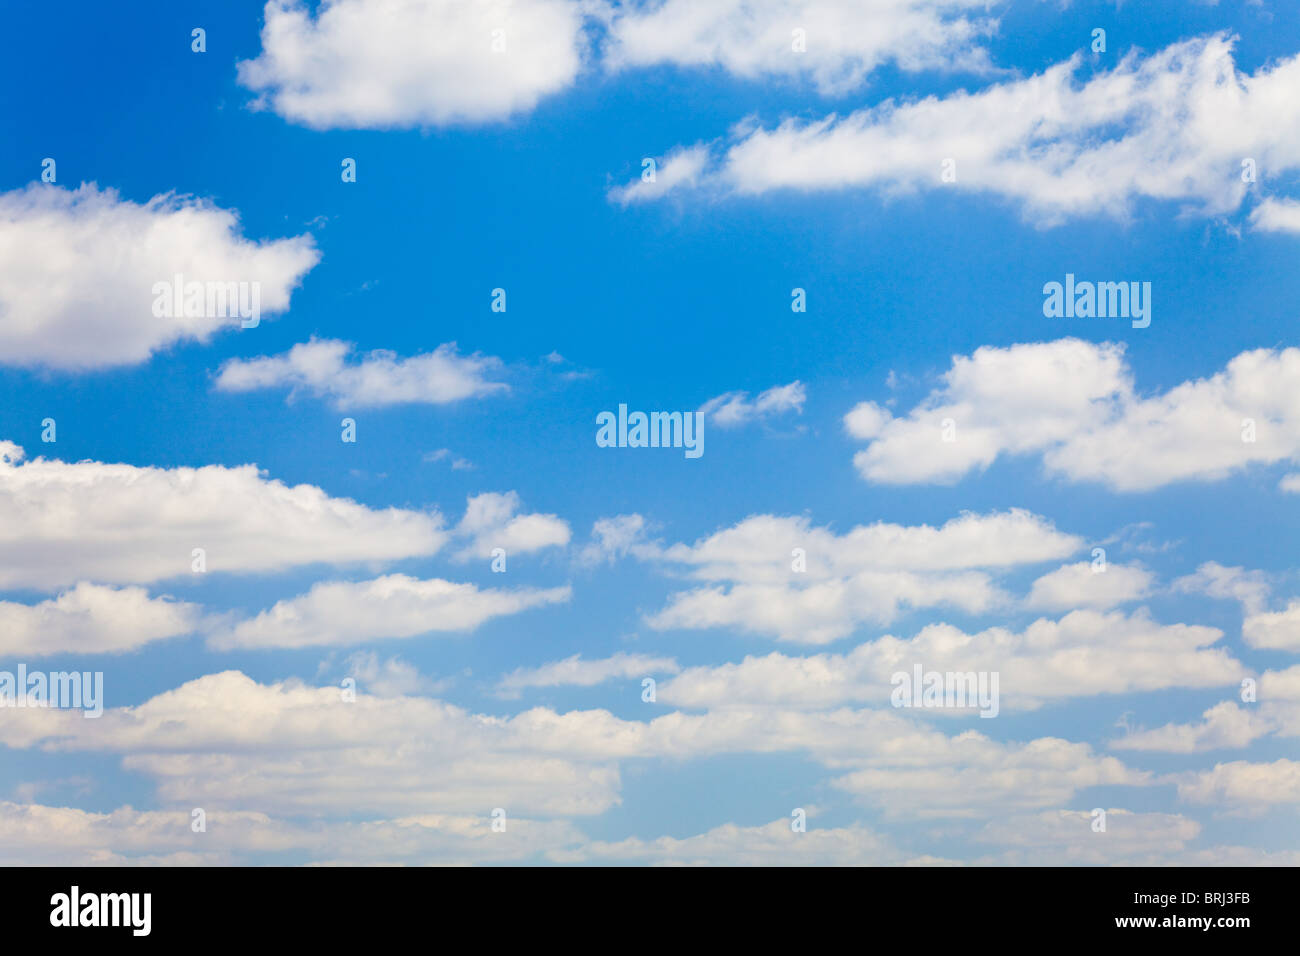 blue sky with white fluffy clouds background - Stock Image